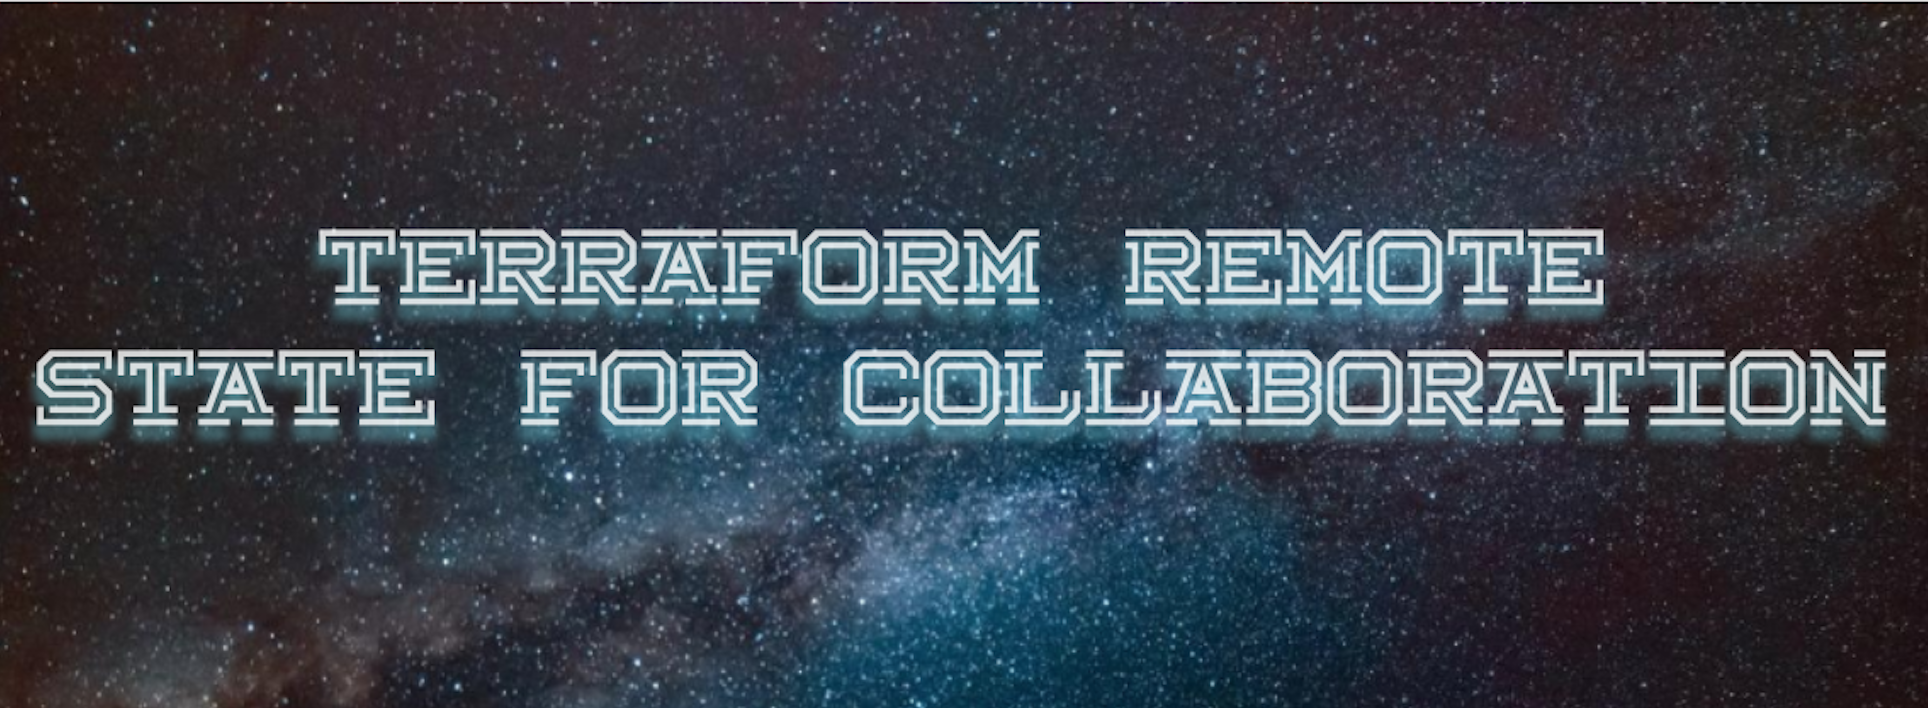 Terraform remote state for collaboration